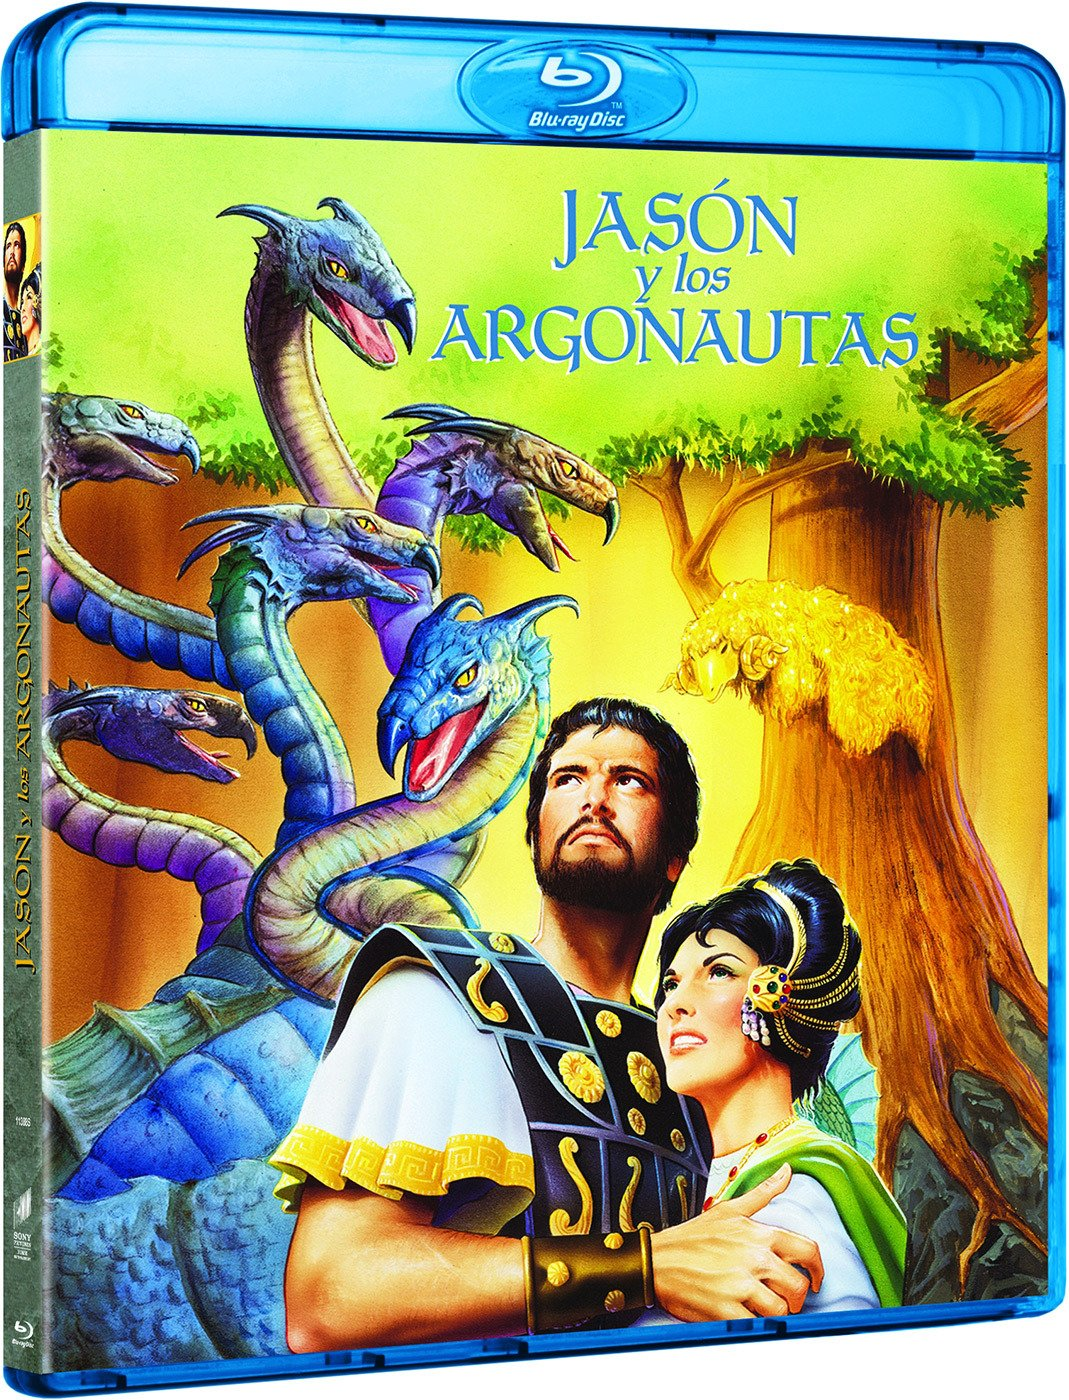 Jason Y Los Argonautas Blu Ray Amazon Es Todd Armstrong Nancy Kovack Don Chaffey Todd Armstrong Nancy Kovack Cine Y Series Tv